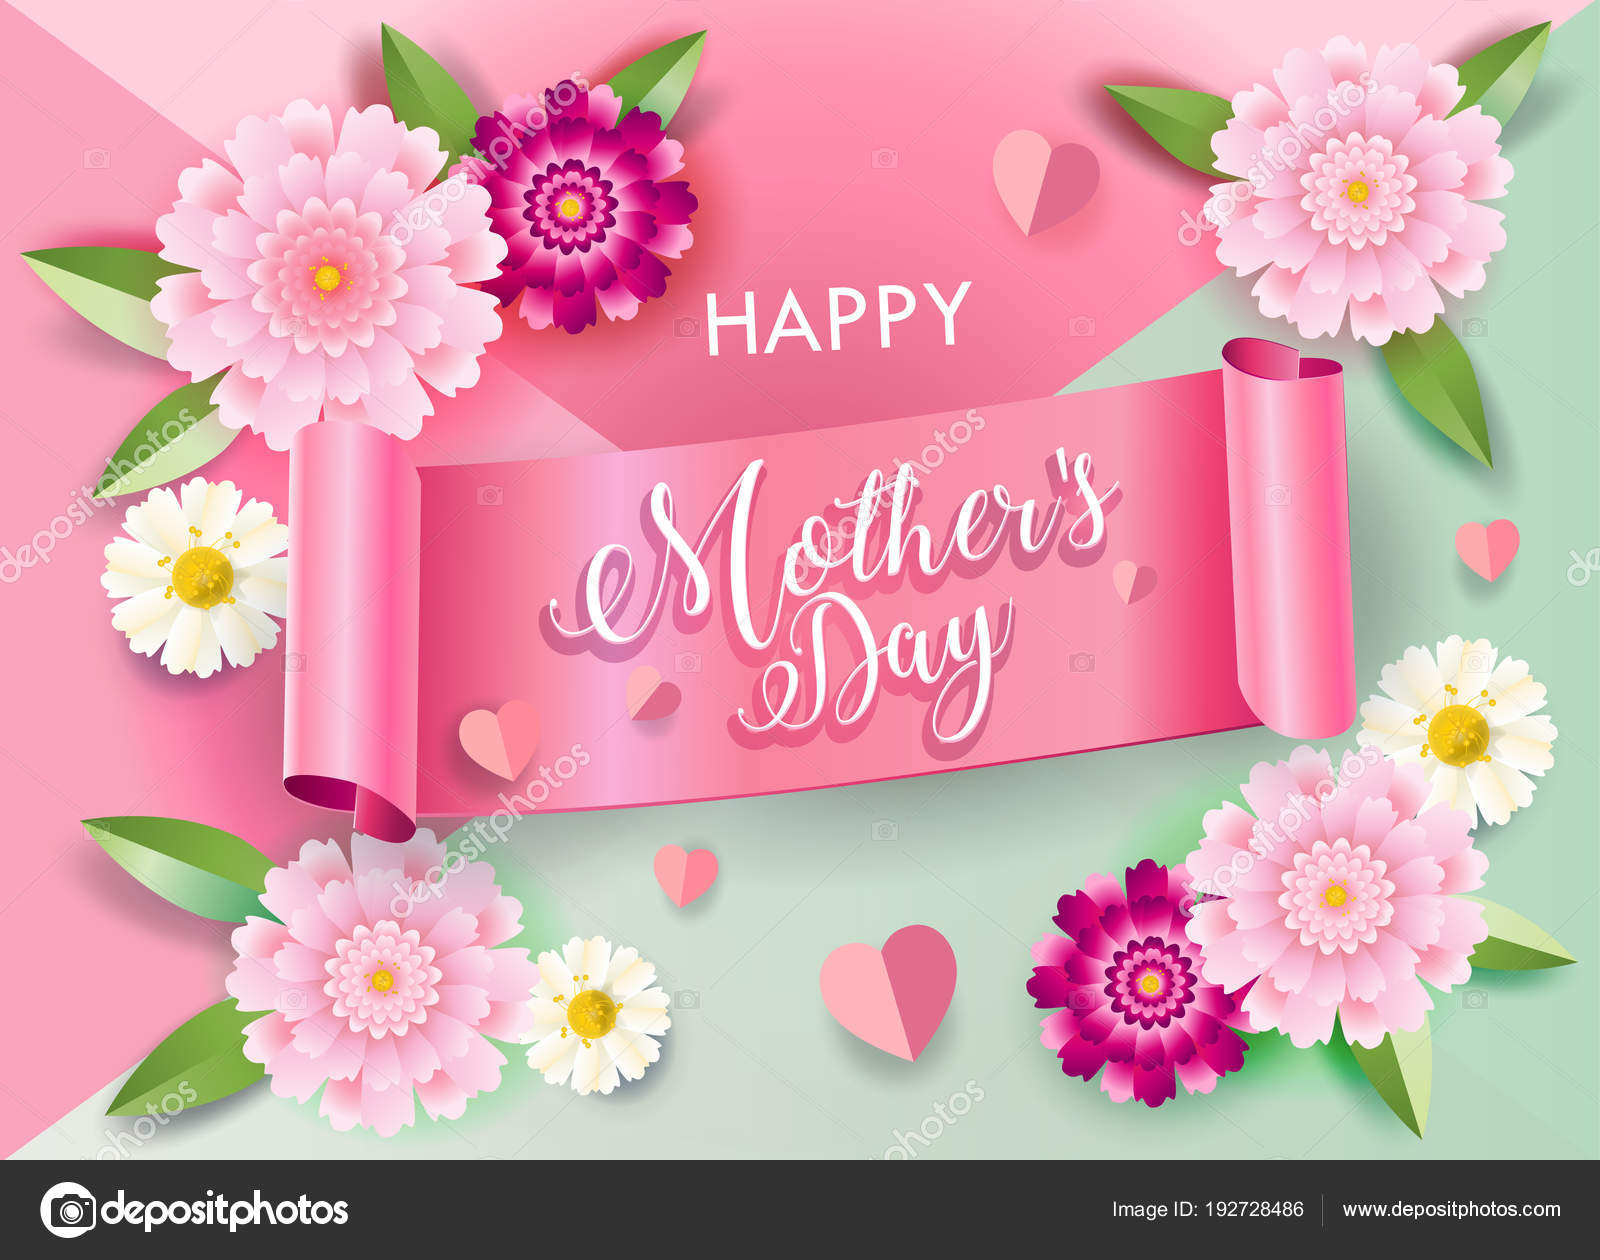 Mother day greeting card flowers ribbon banner hearts blossom mothers day greeting card with flowers ribbon banner hearts blossom ornament balloons hearts love symbols romance floral background m4hsunfo